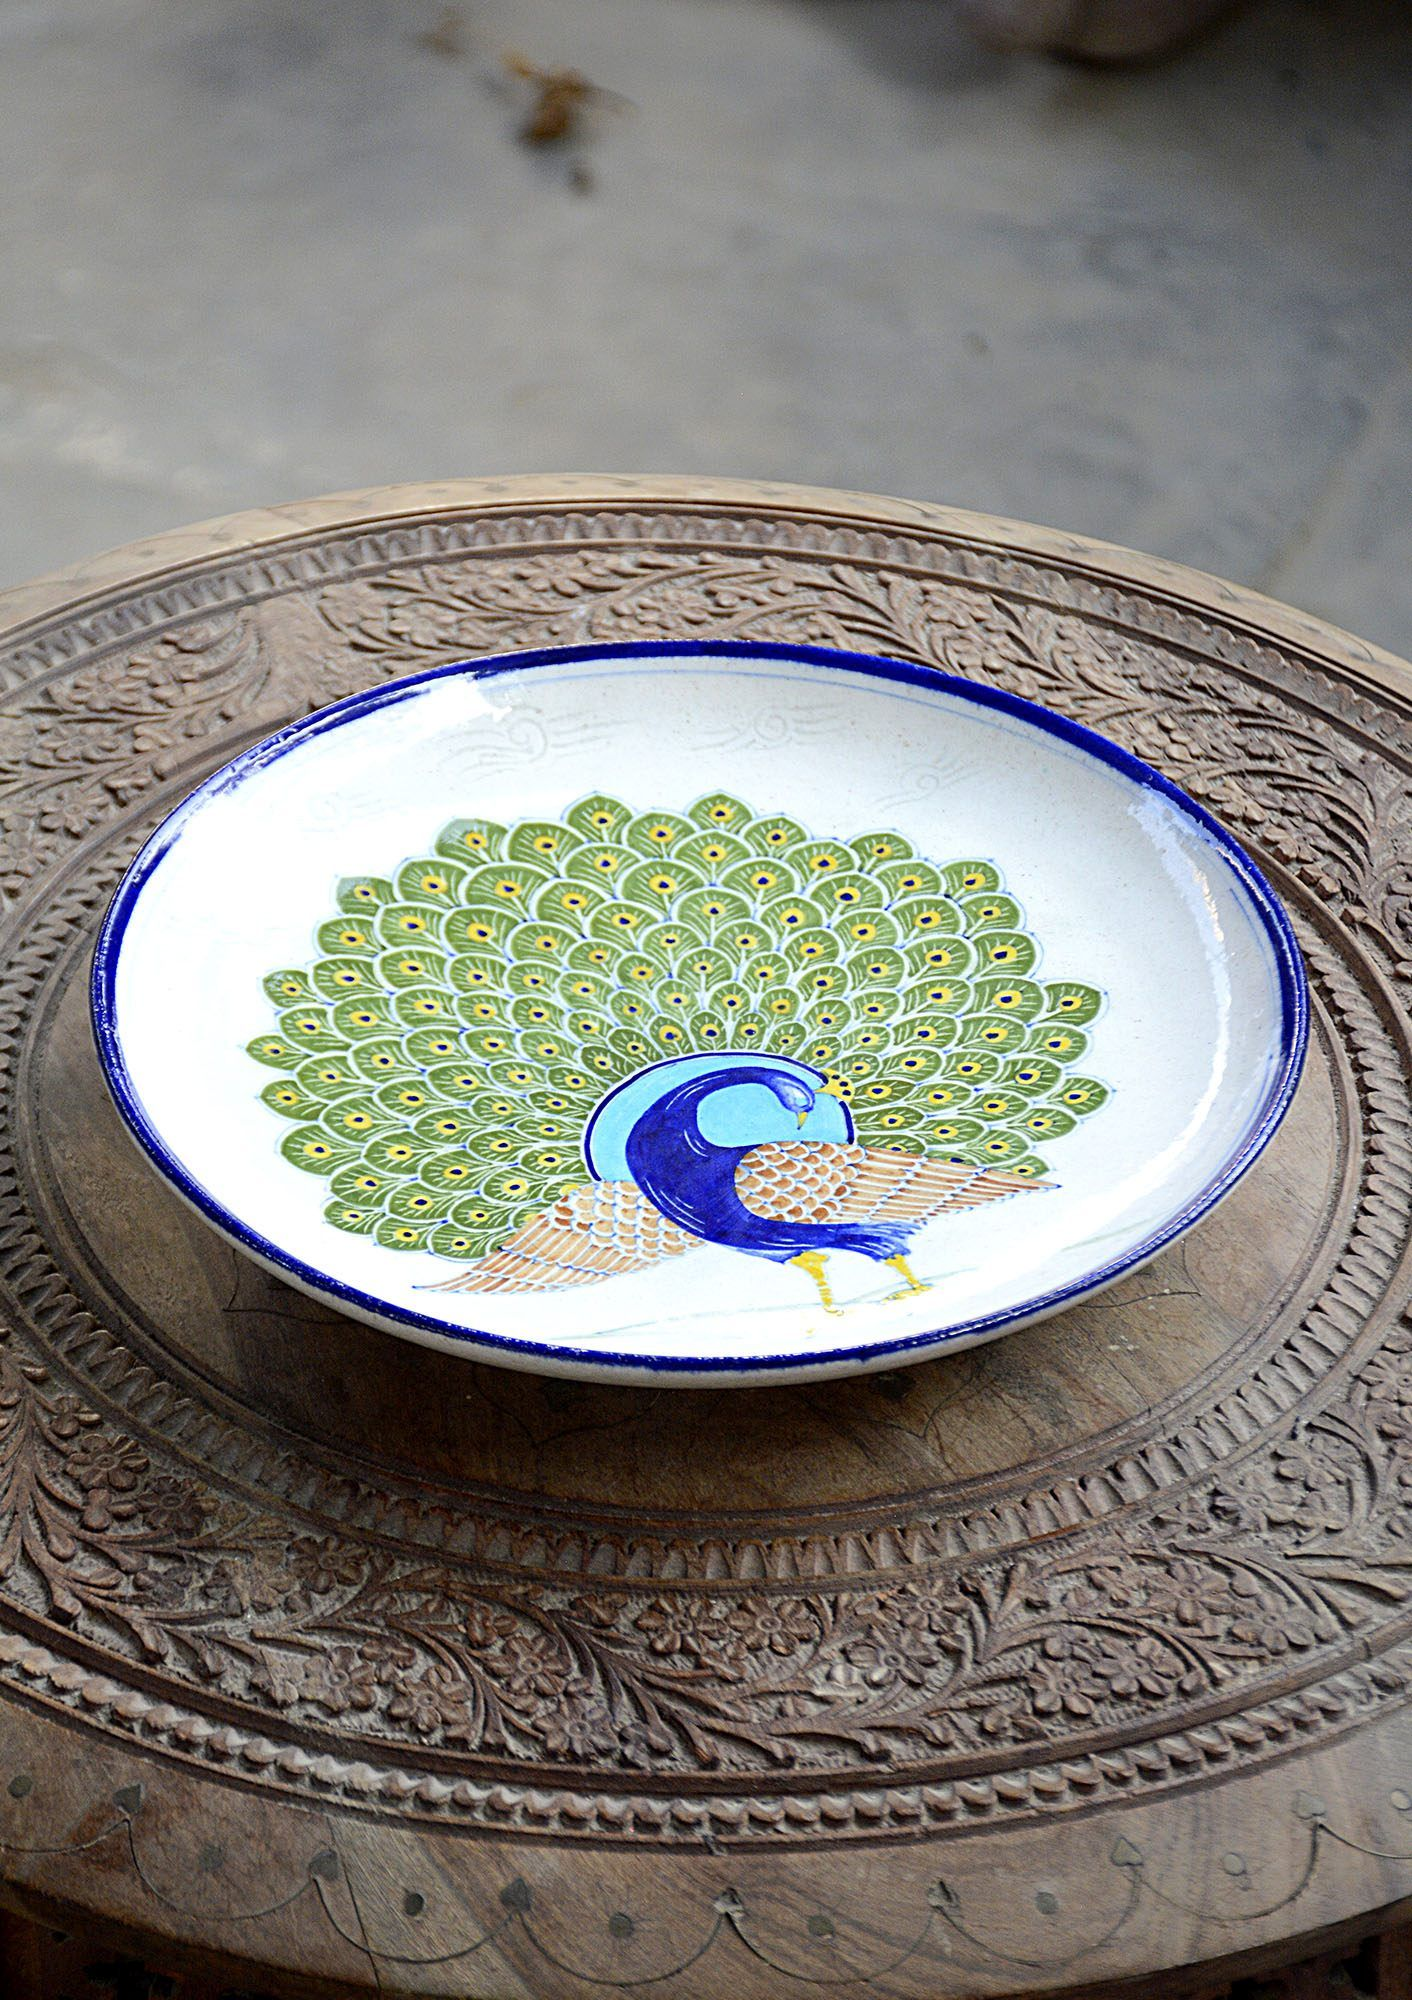 Hand Crafted Plates Dinning And Bath Bd This Handcrafted Oval Shape Decorative Plate Is Made From Ceramic This Plates Are Fi Plates Decorative Plates Handcraft